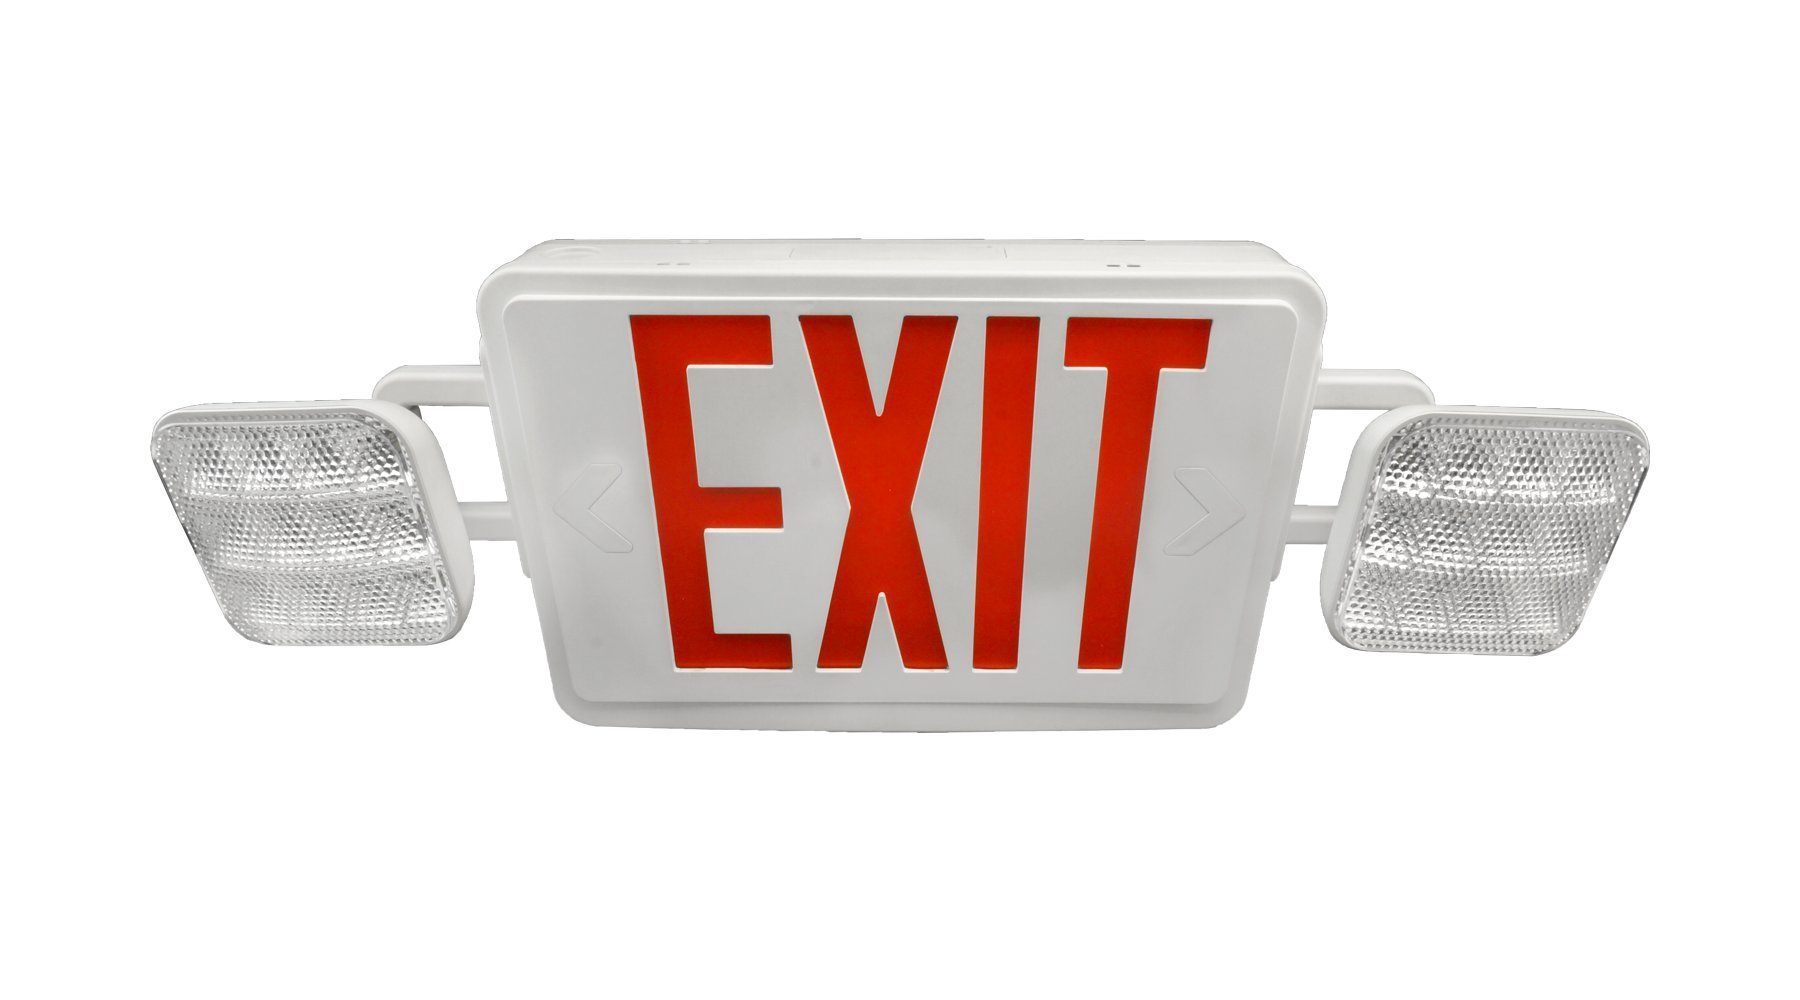 NICOR Lighting Remote Capable LED Emergency Exit Sign with Dual Adjustable LED Heads, White with Red Lettering (ECL1-10-UNV-WH-R2R) by NICOR Lighting (Image #4)